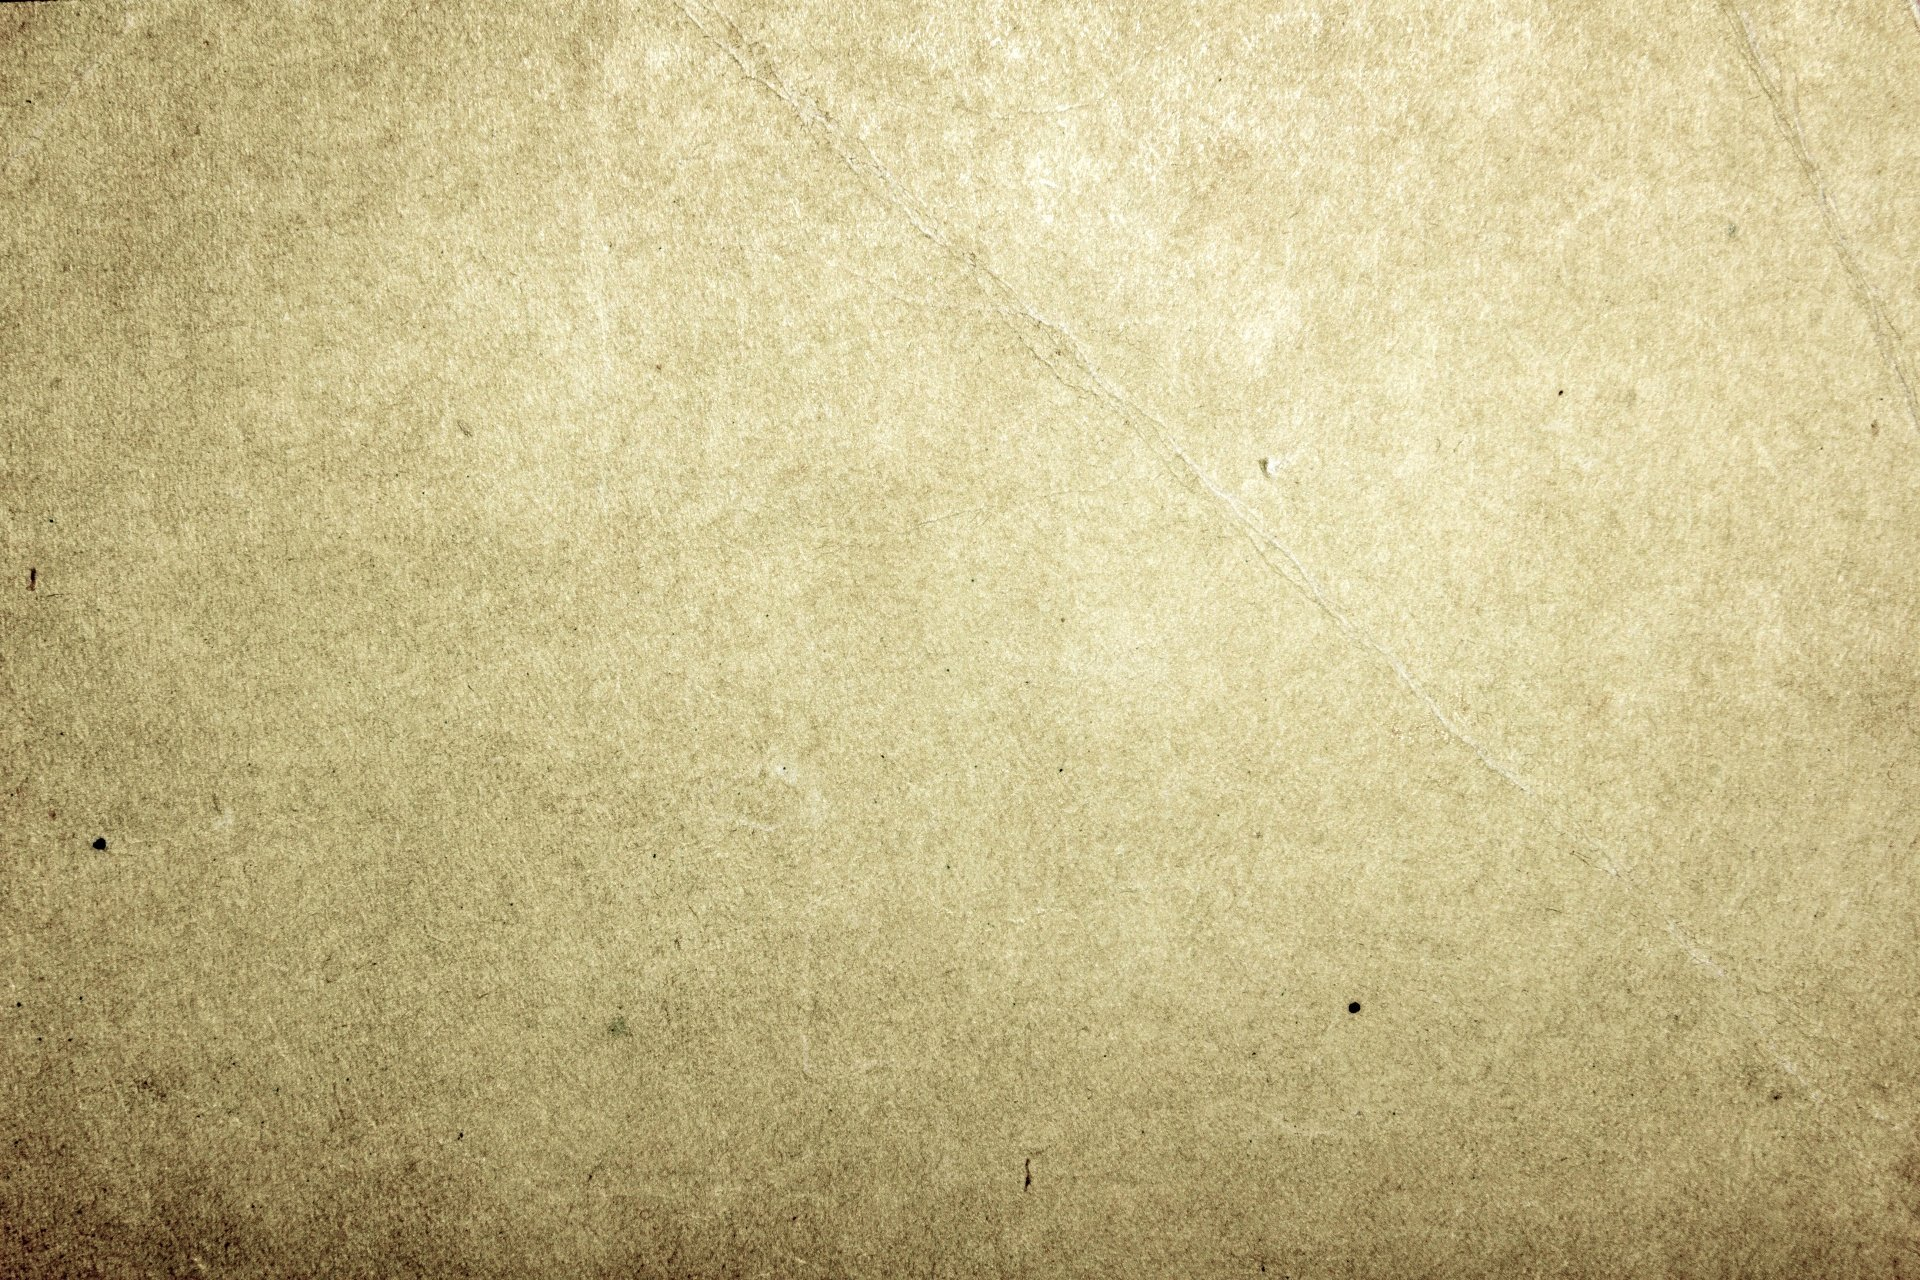 Old Paper Texture Free Luxury Vintage Paper Texture Free Stock Public Domain